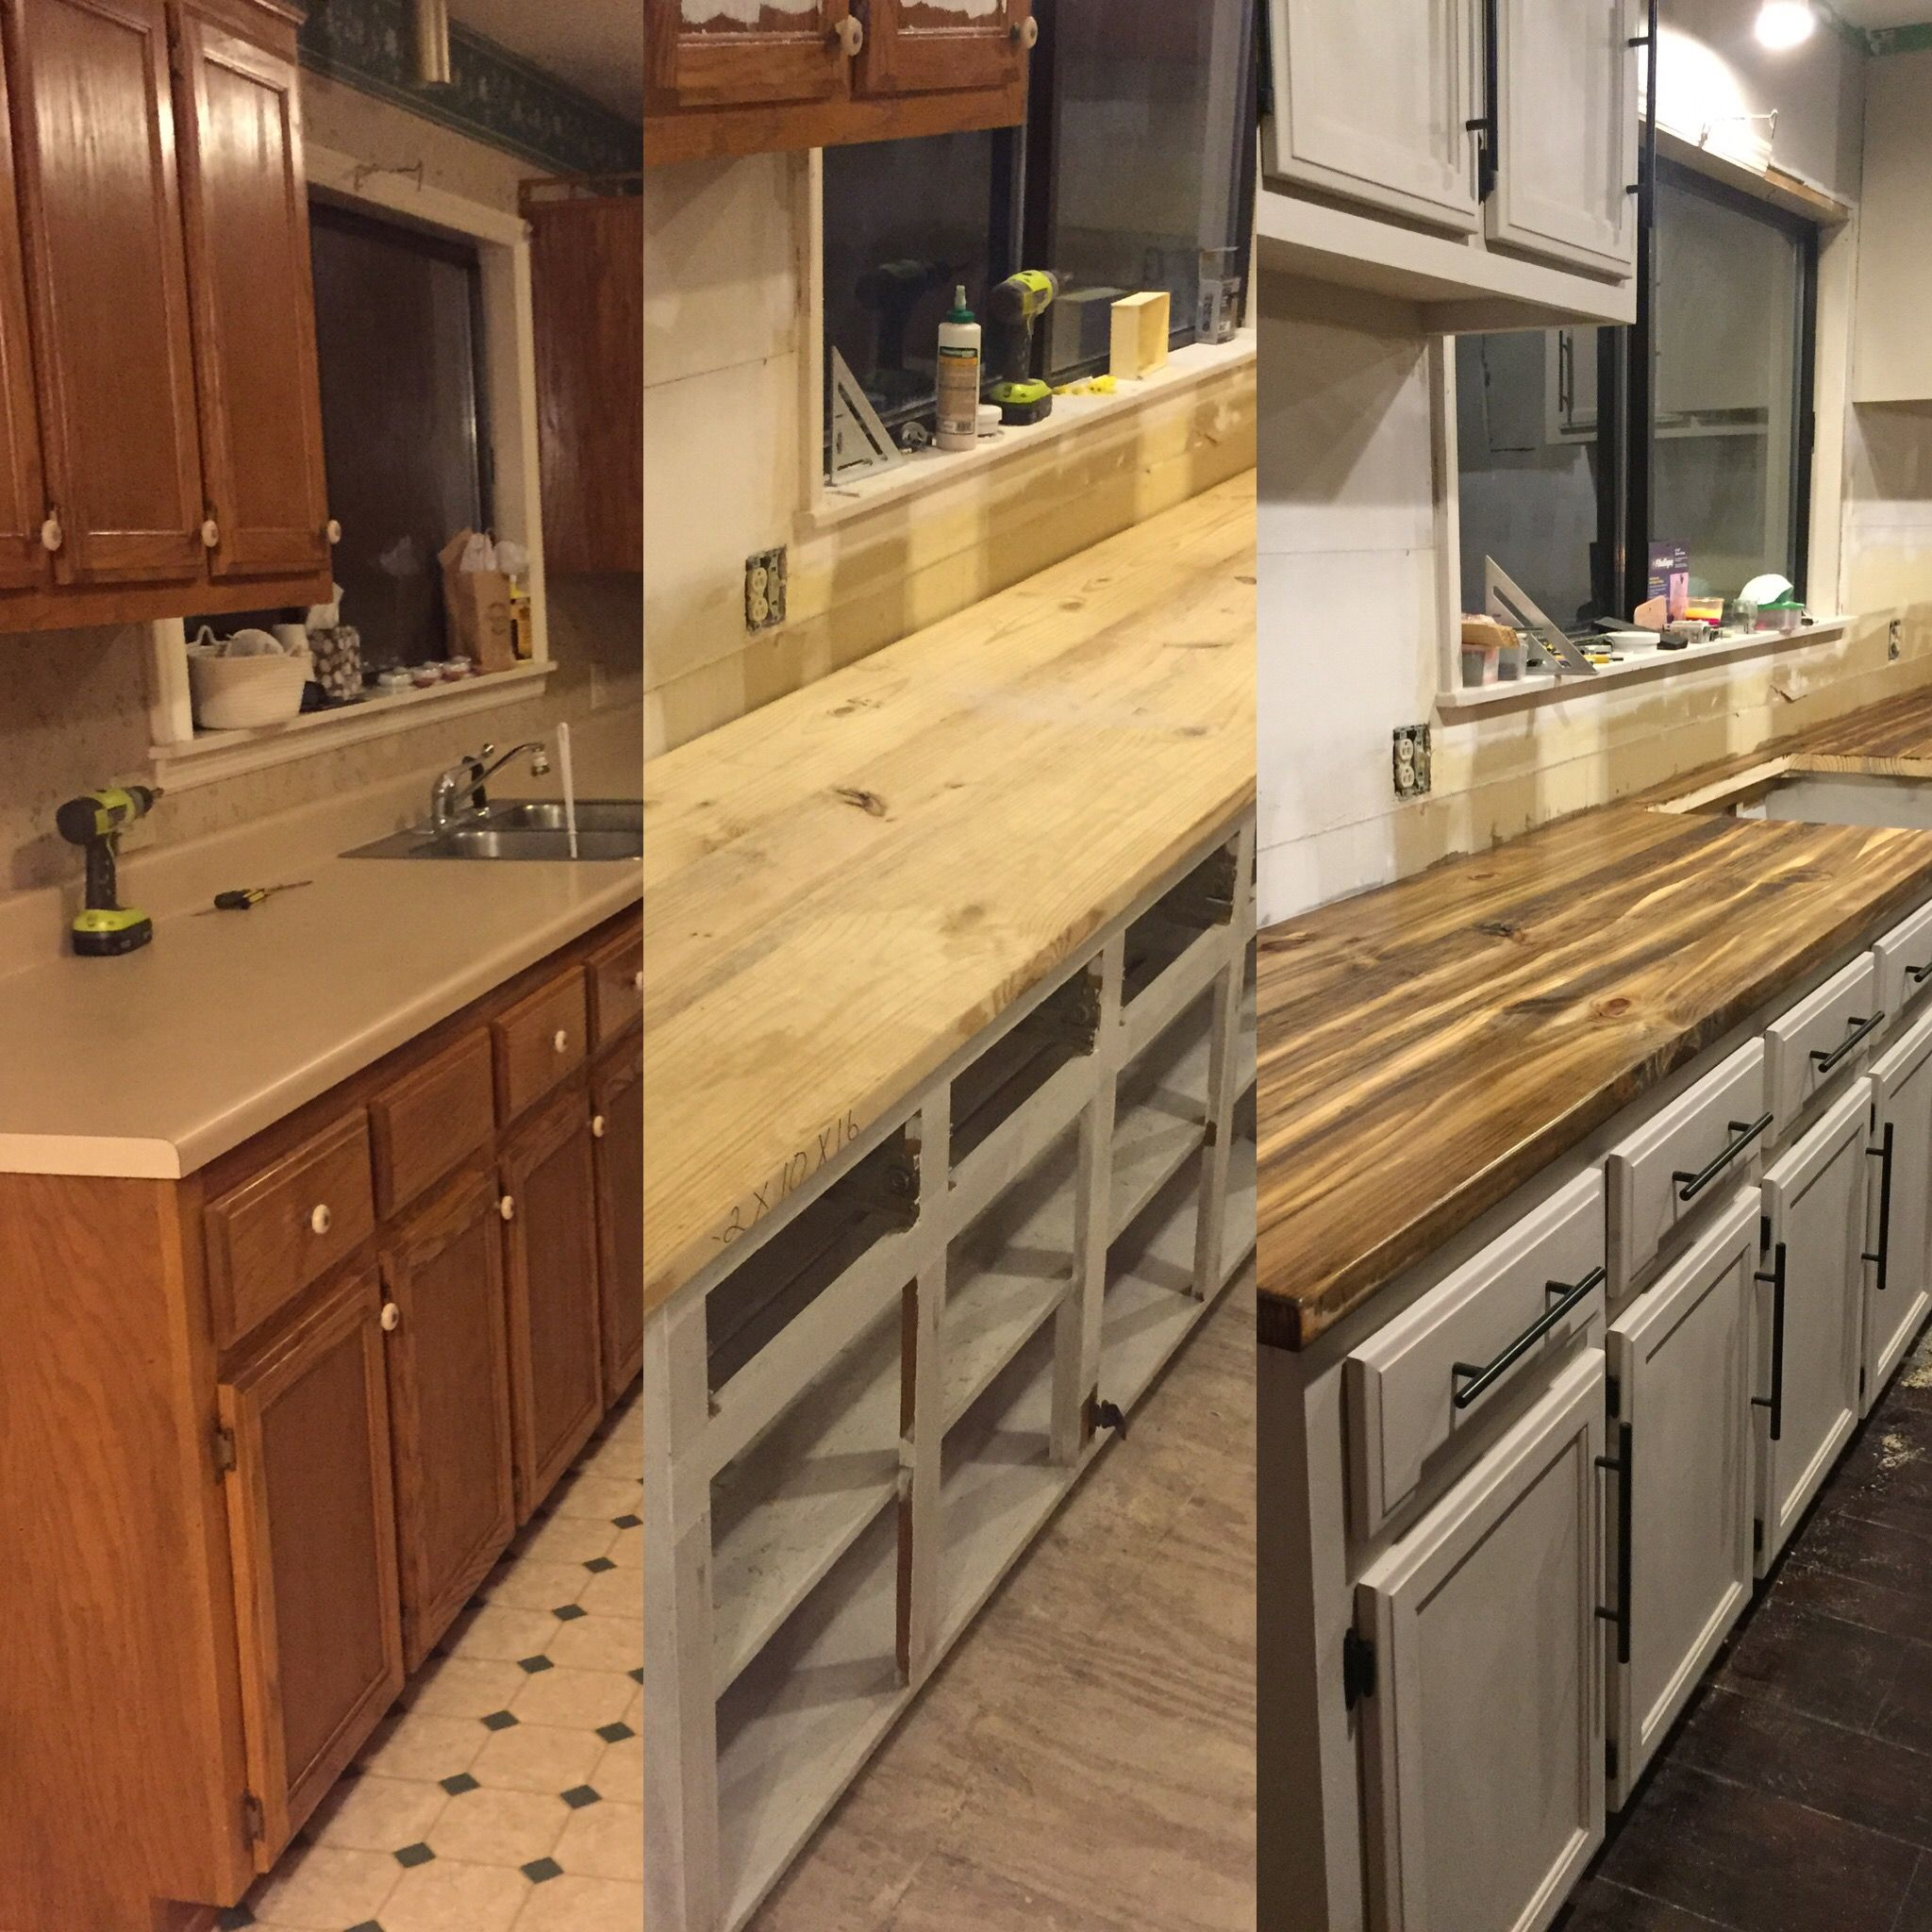 Kitchen Cabinets Cheap: DIY $150 Countertops! FOLLOW ME ON INSTAGRAM